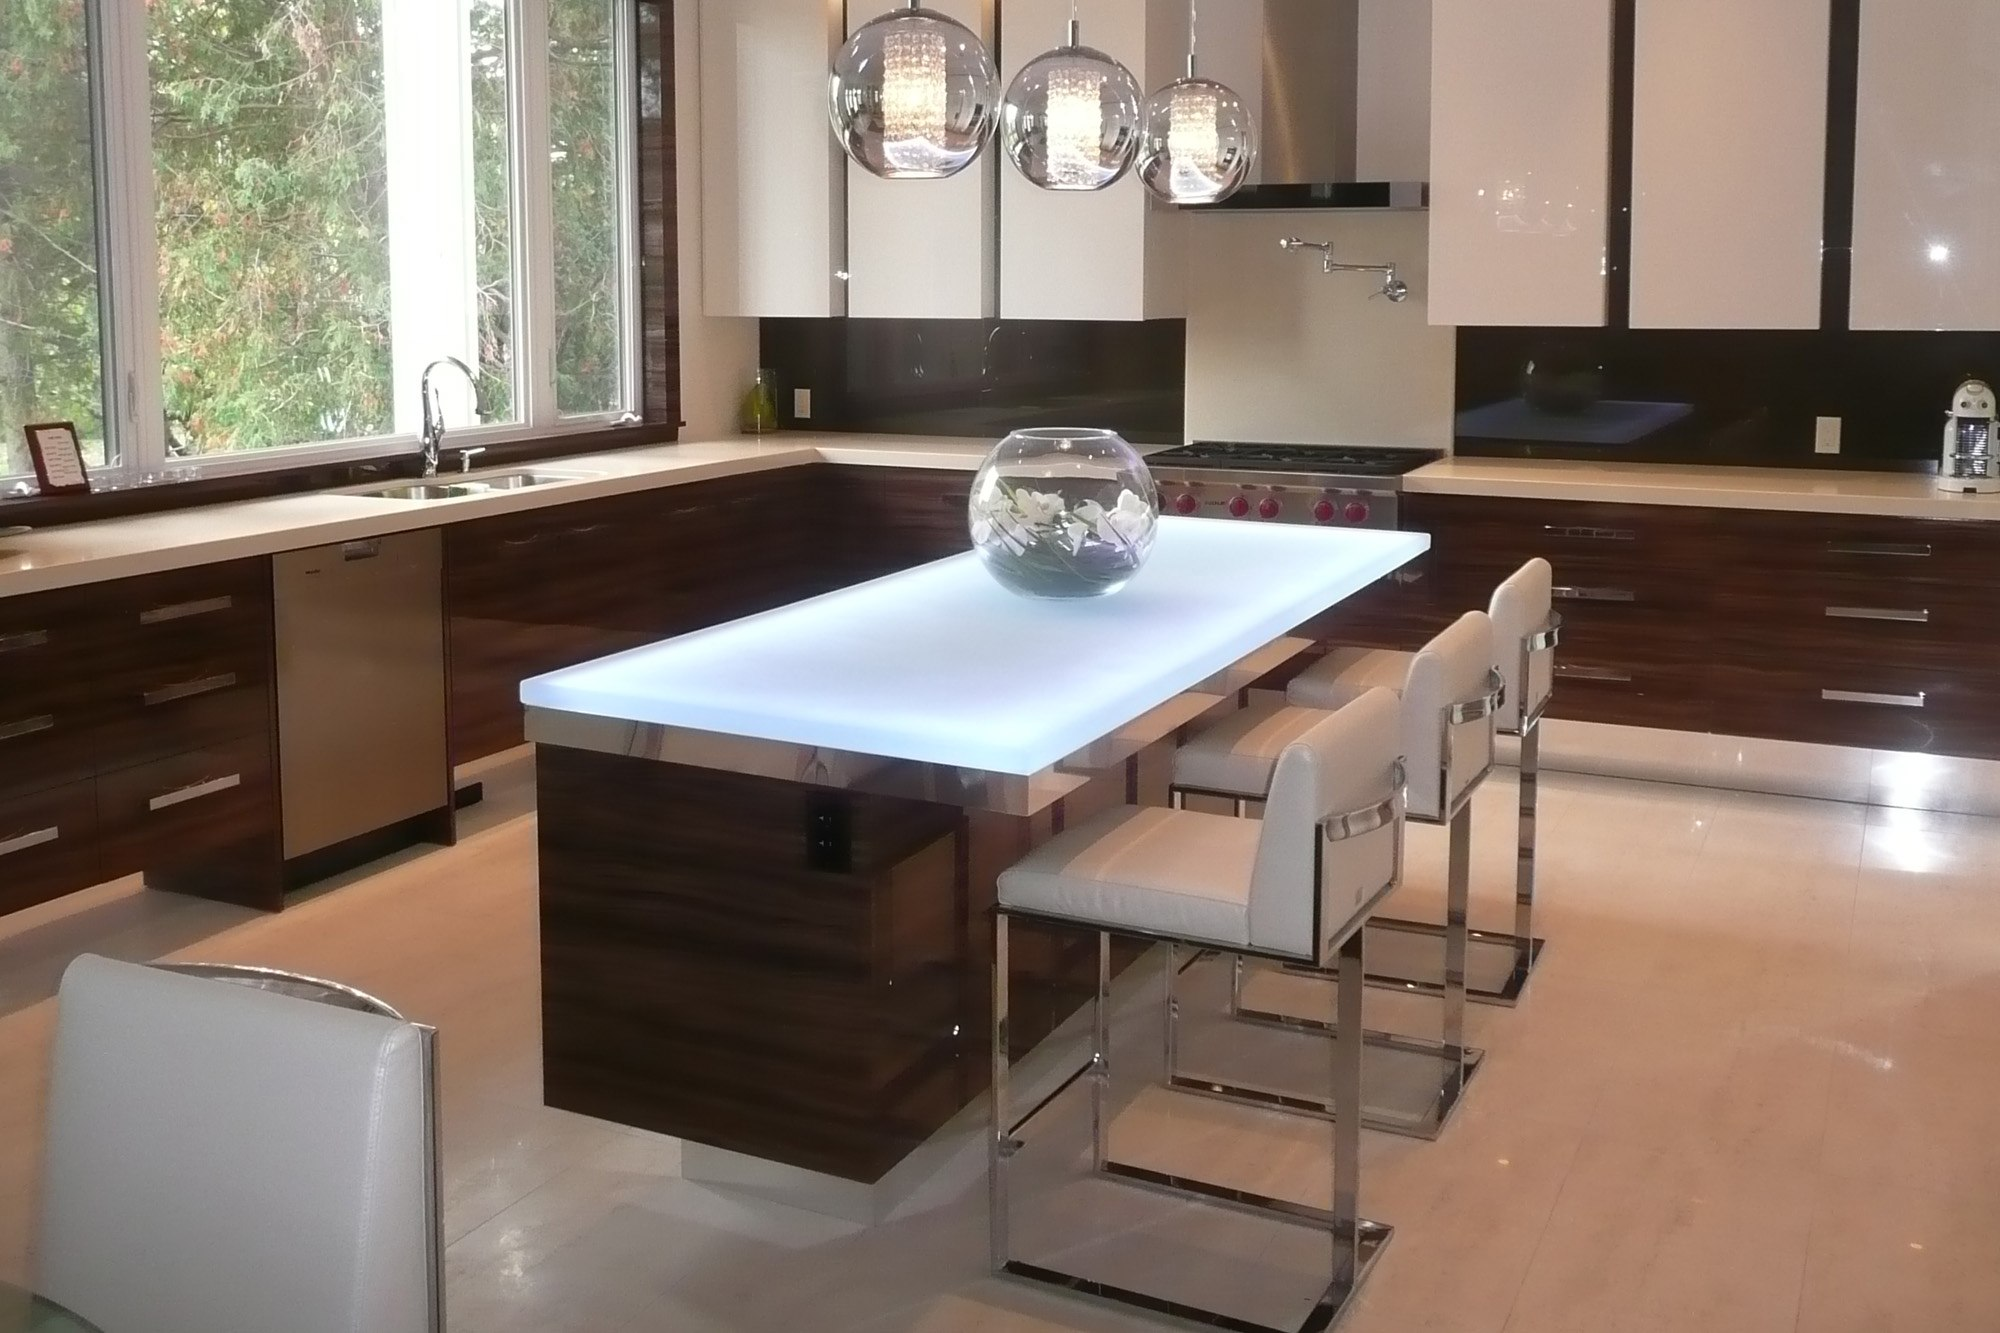 Think Glass Countertops The Ultimate Luxury Touch For Your Kitchen Decor Glass Countertops